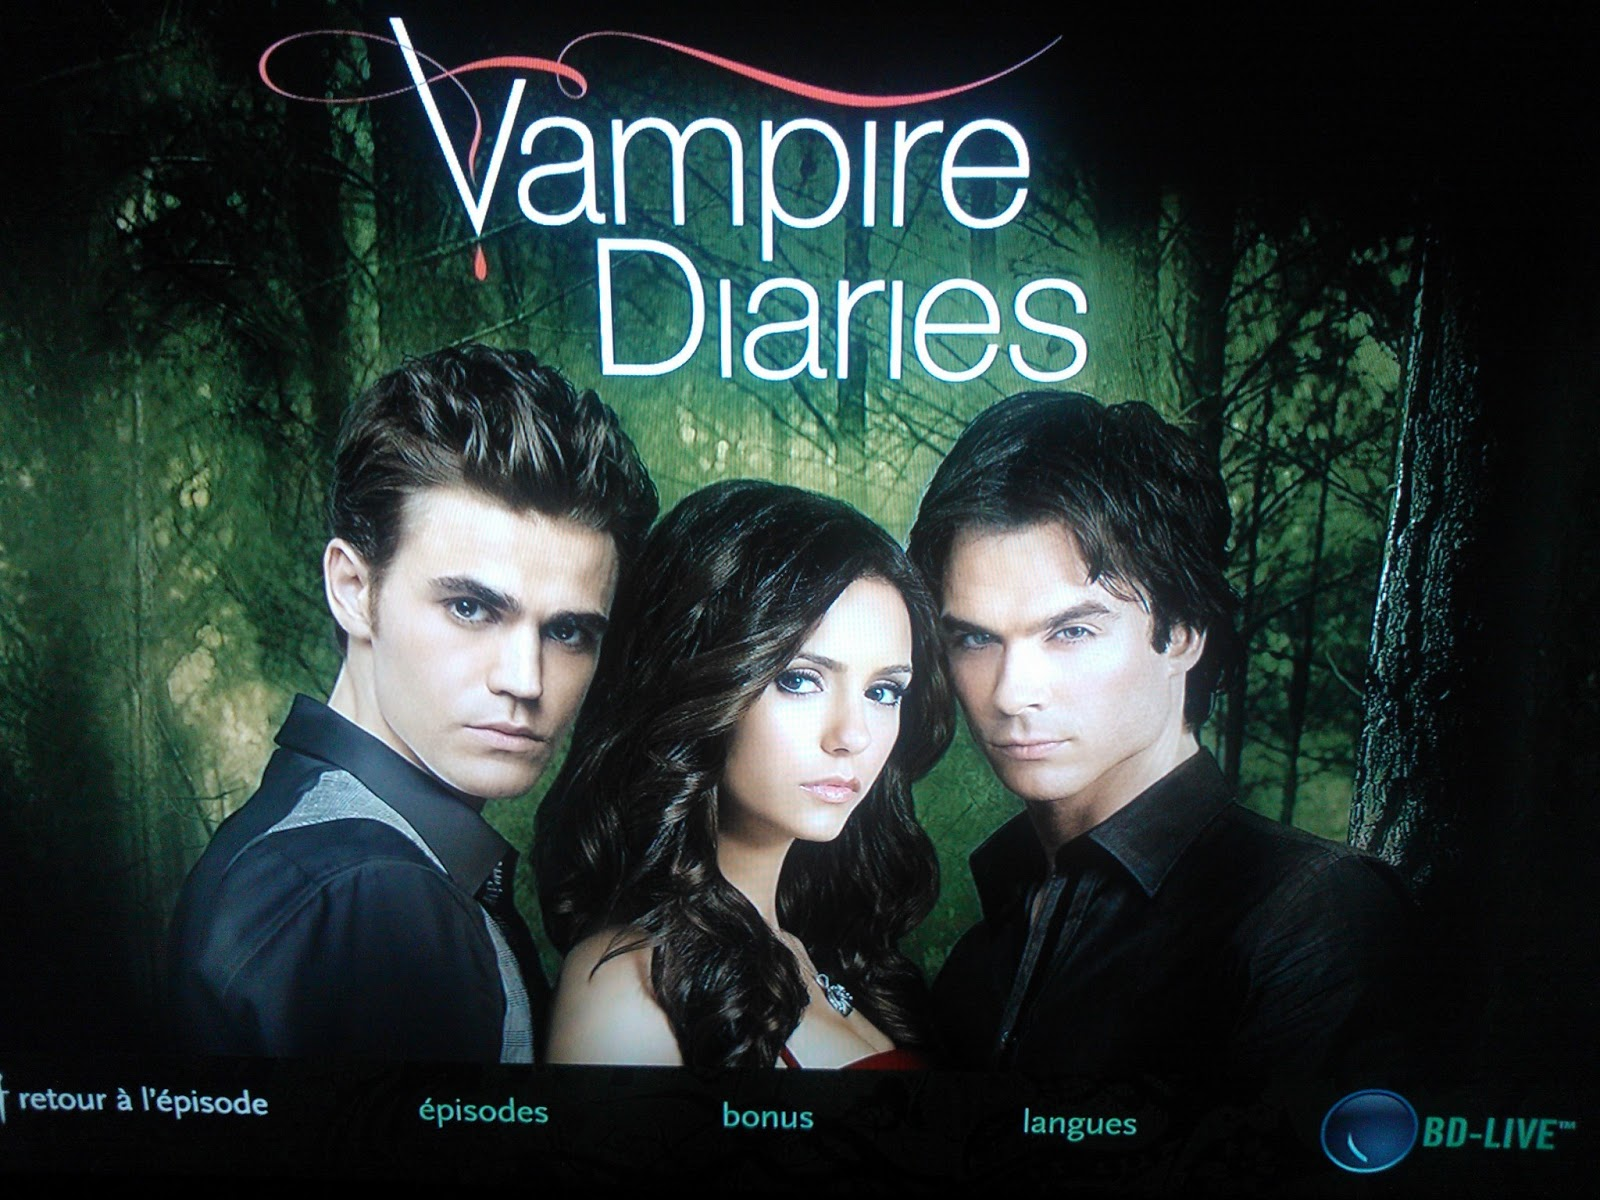 cinerock07 le blog cin de roland vampire diaries s rie fantastique am ricaine 2009 2013. Black Bedroom Furniture Sets. Home Design Ideas